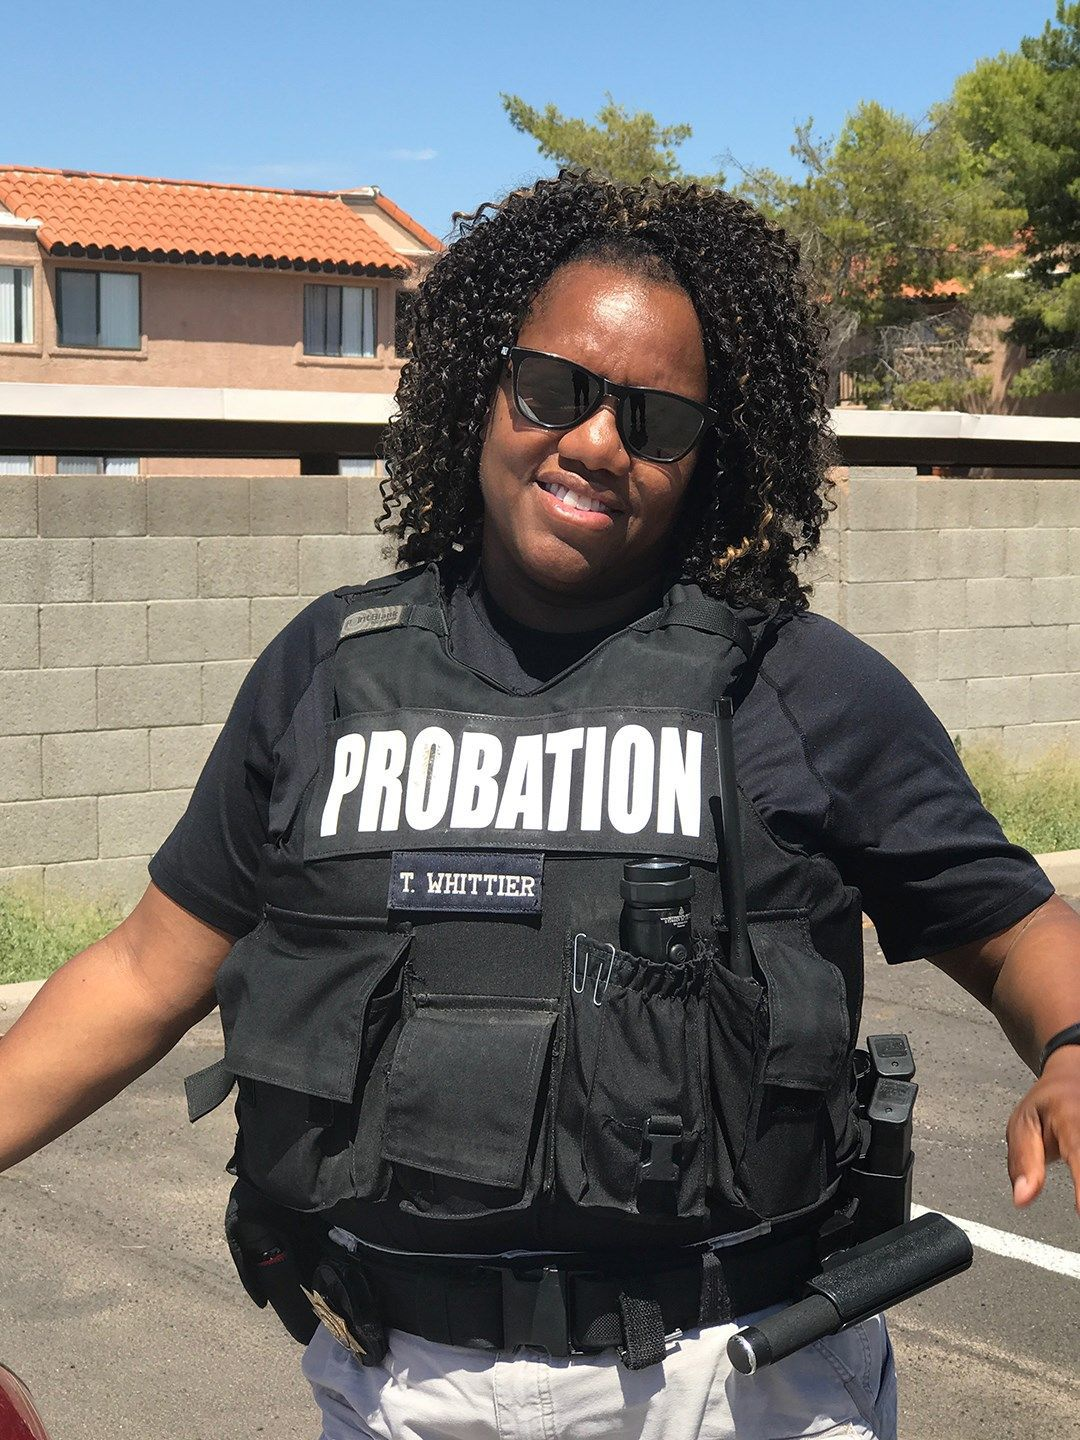 Black probation officer inspires former neo-Nazi to cover up